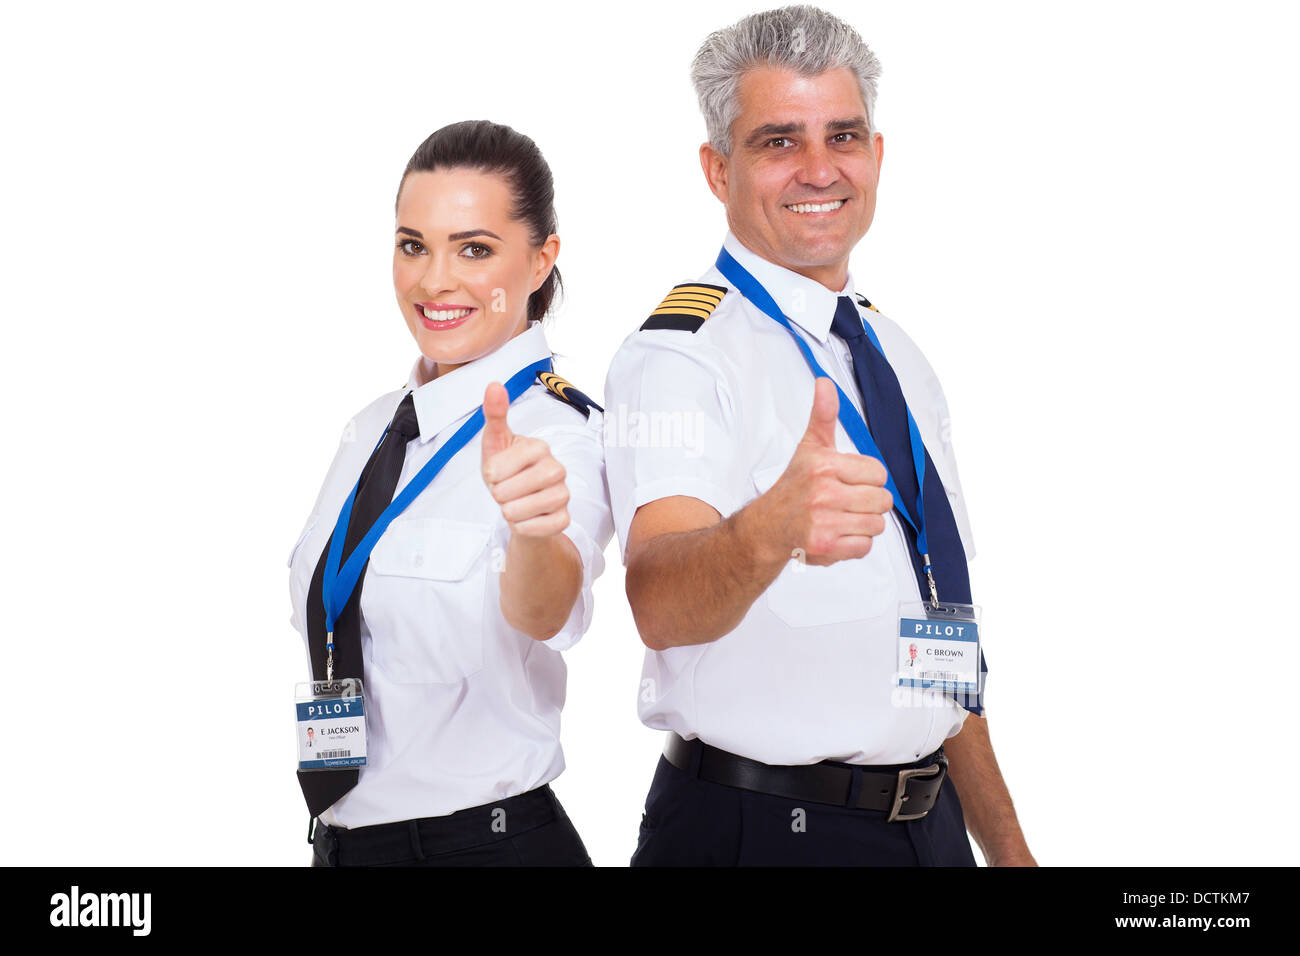 cheerful airline pilots giving thumbs up over white background - Stock Image